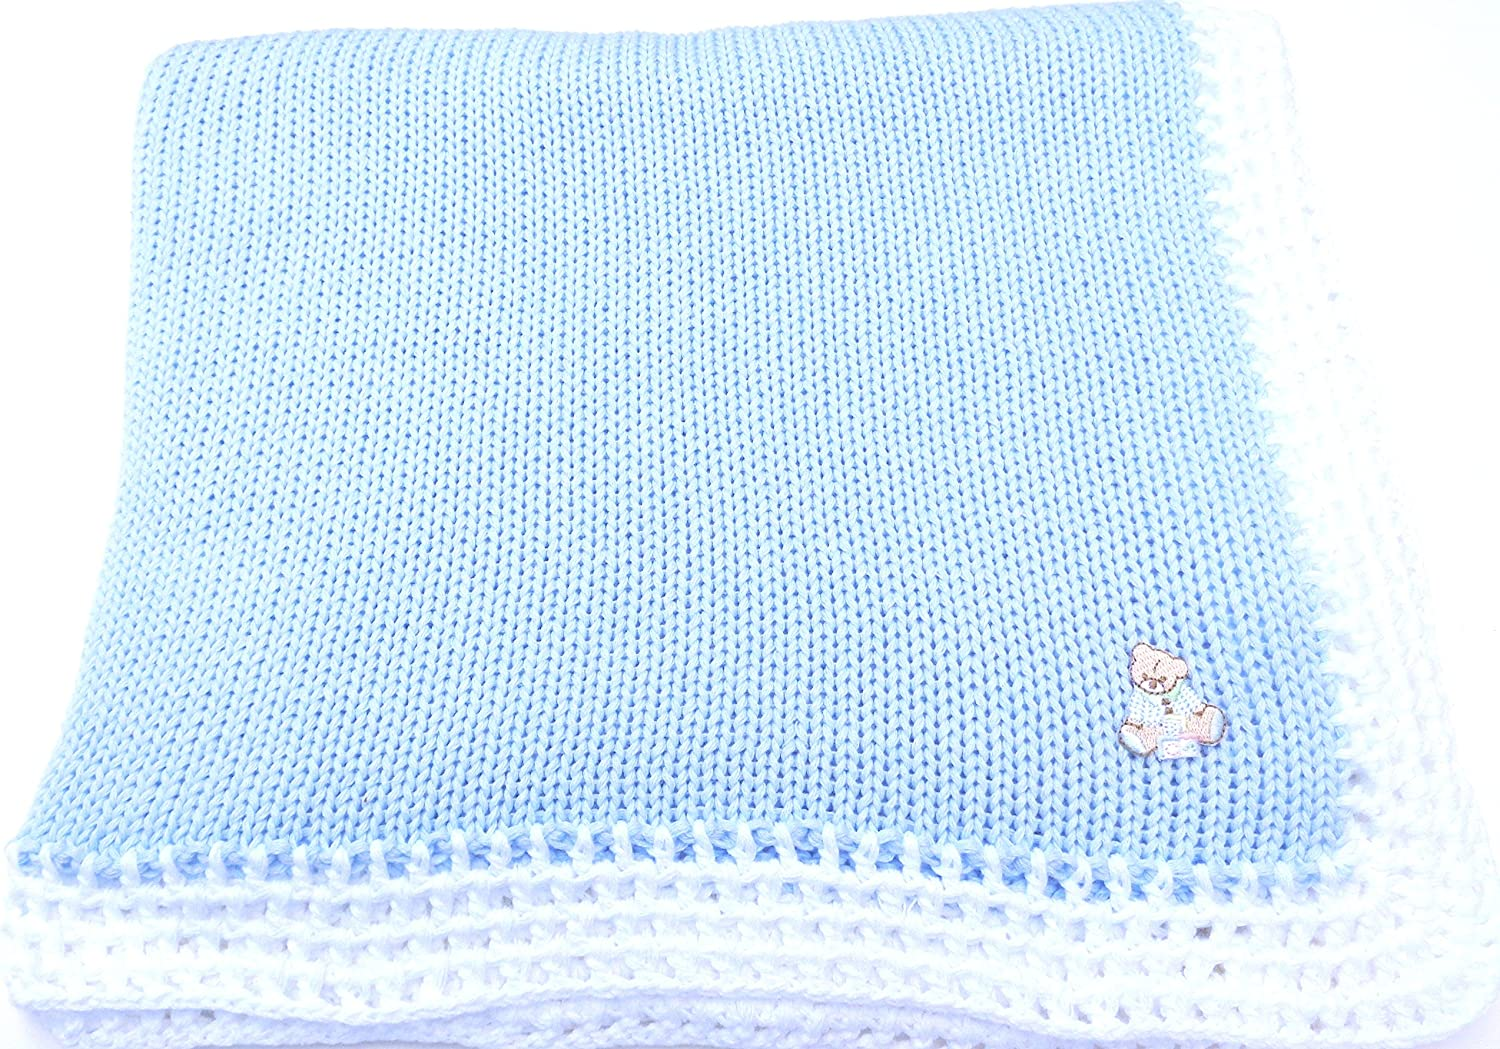 SONA Knitted Crochet Finished Blue Cotton White Trim Baby Blanket with Applique'.